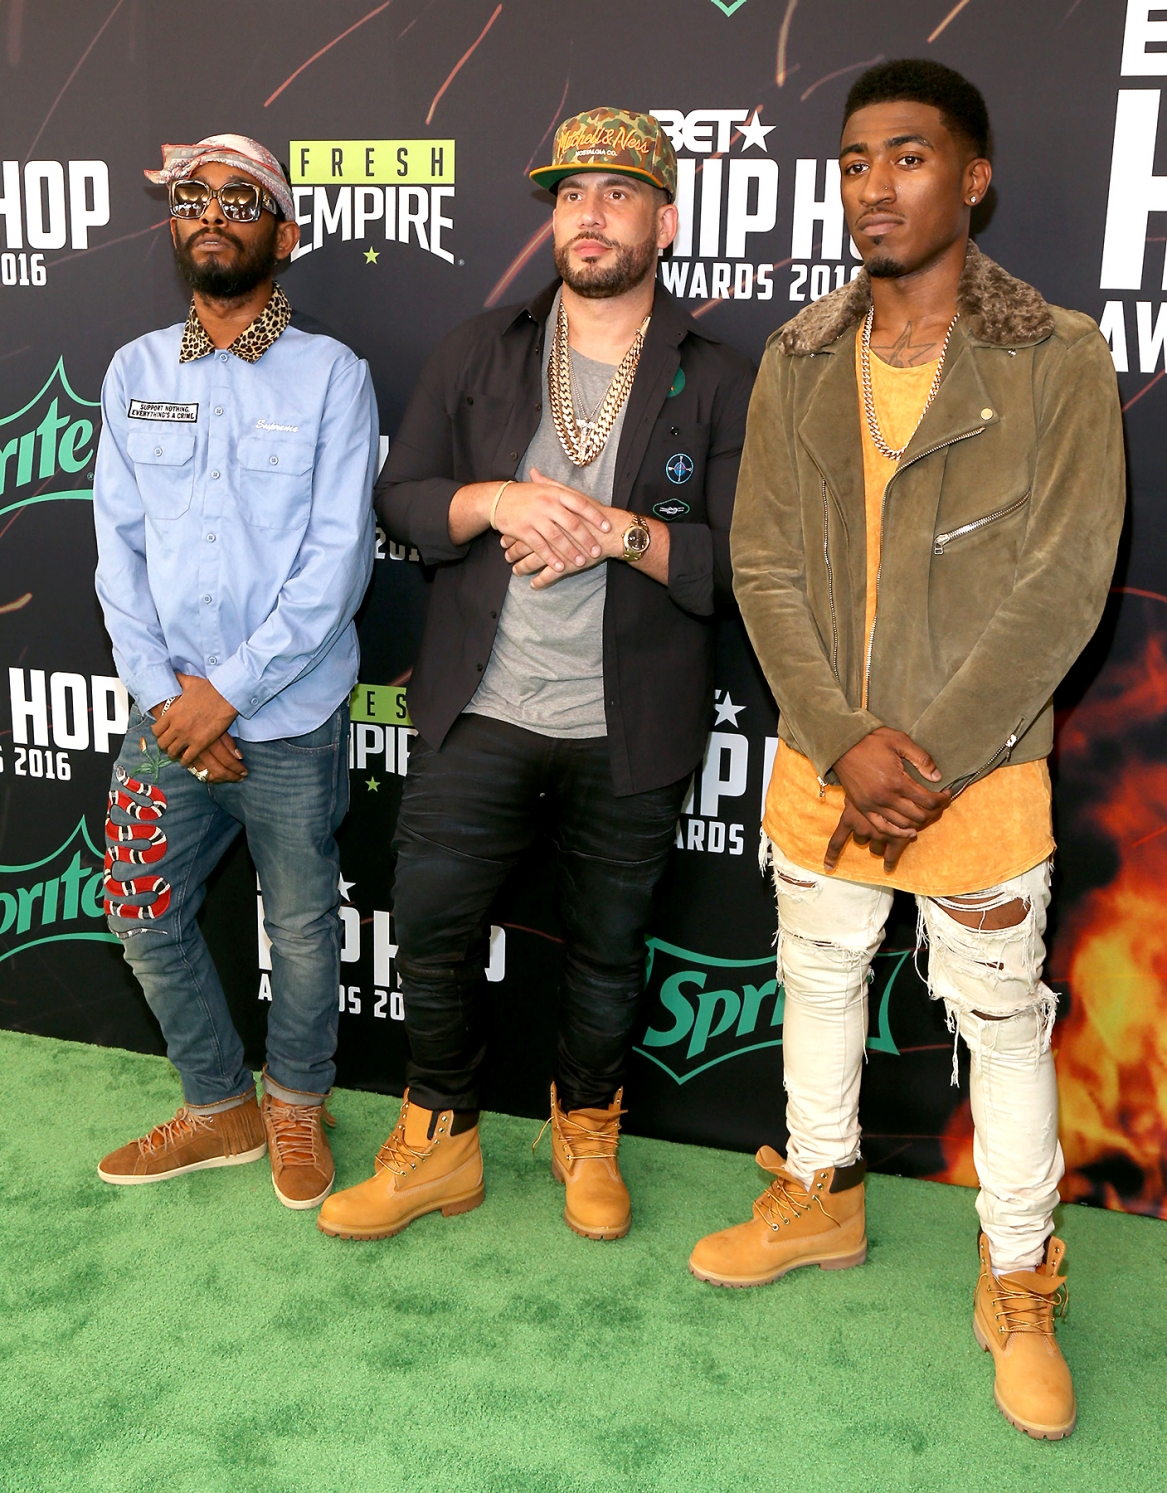 091716-shows-hha-red-carpet-rundown-3-skeme-dj-drama-lyquin